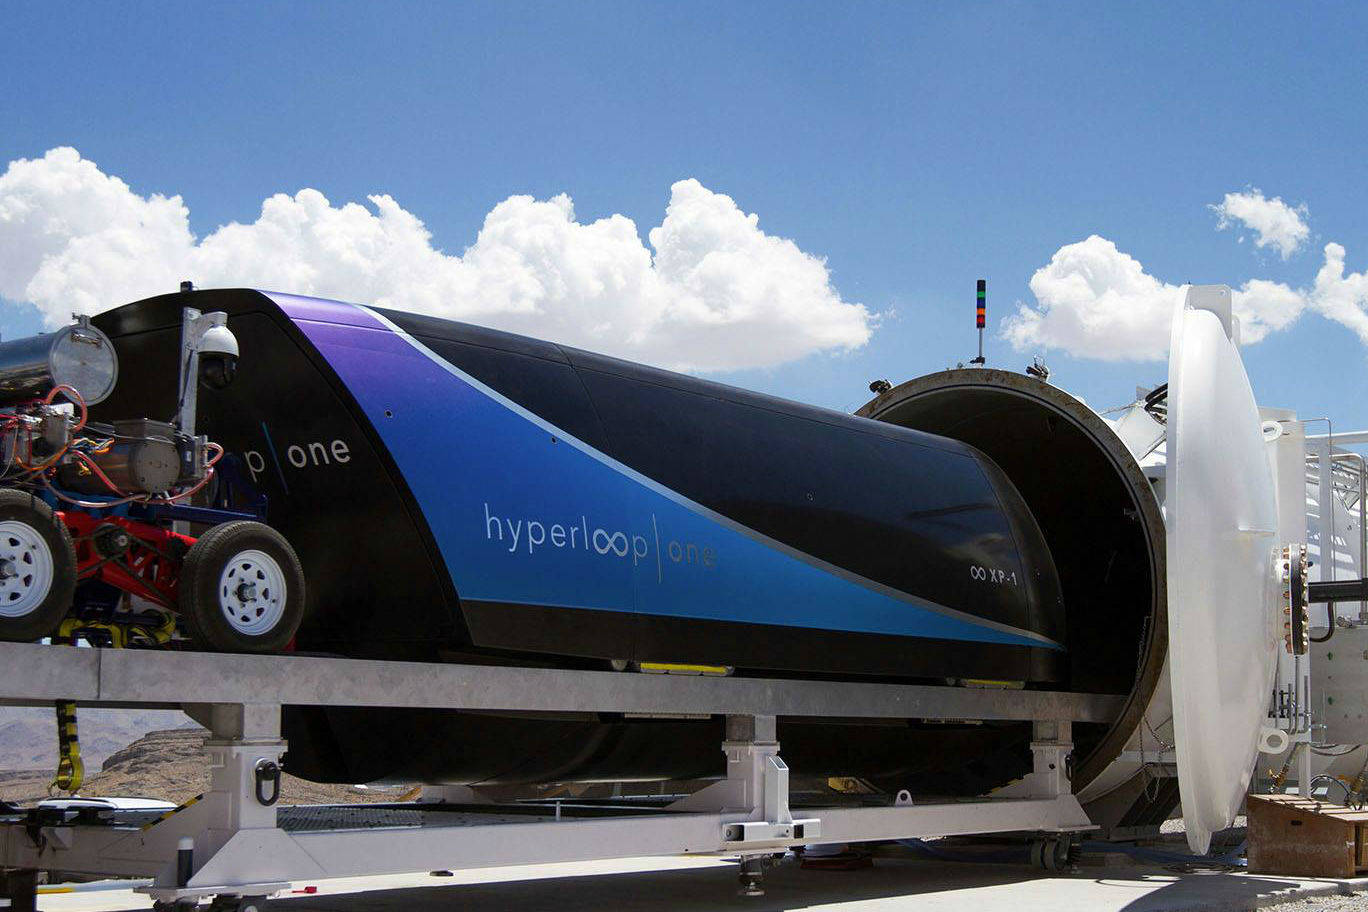 Travel via Hyperloop One in India likely to be cheaper than a flight